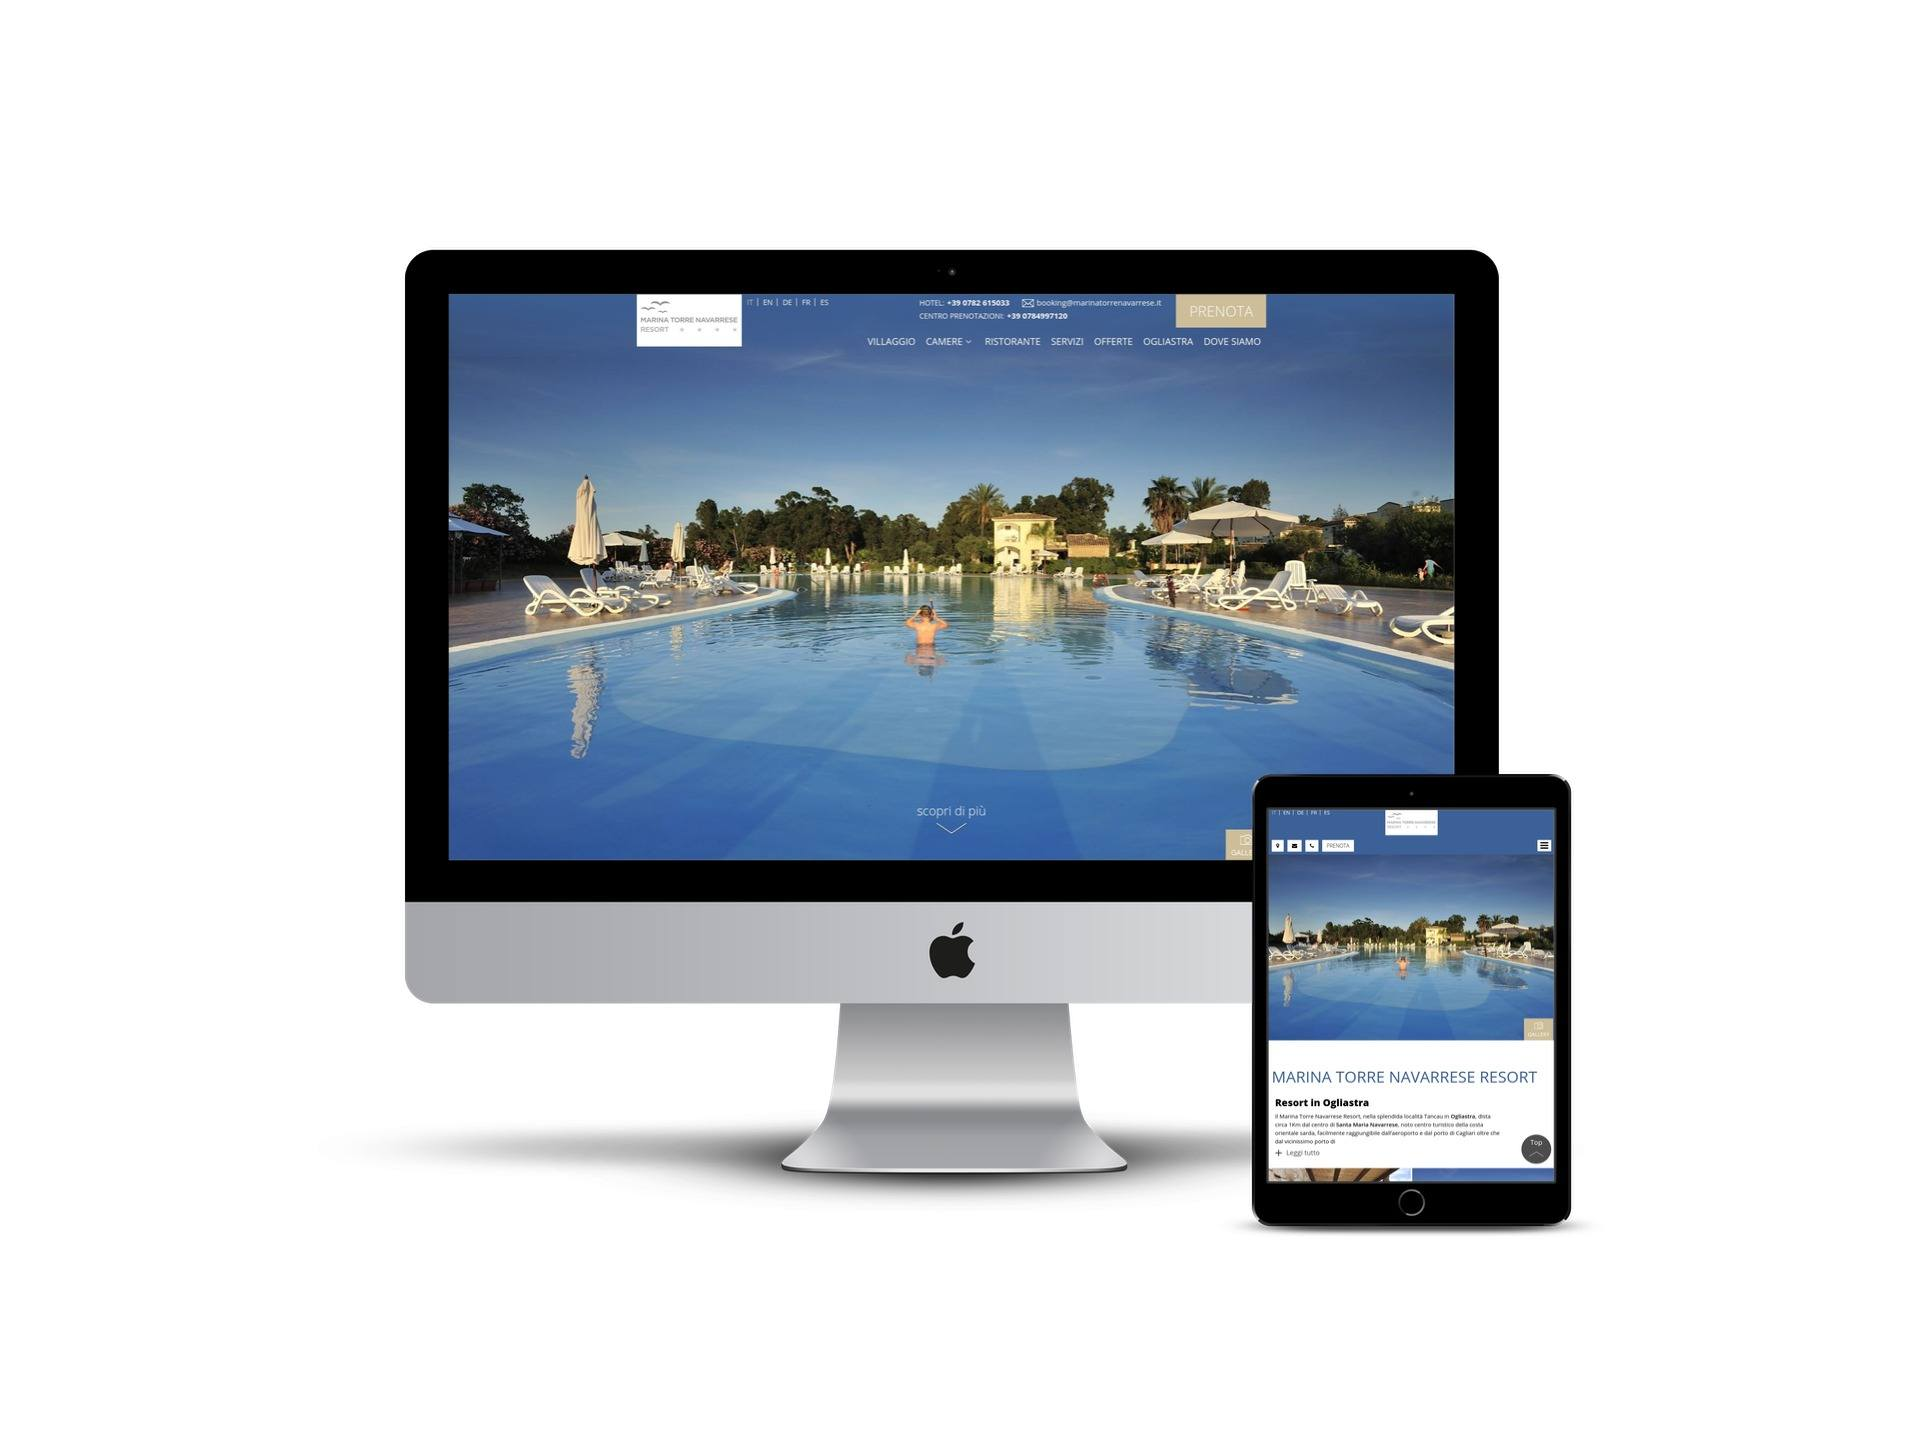 marina-torre-navarrese-resort-devices